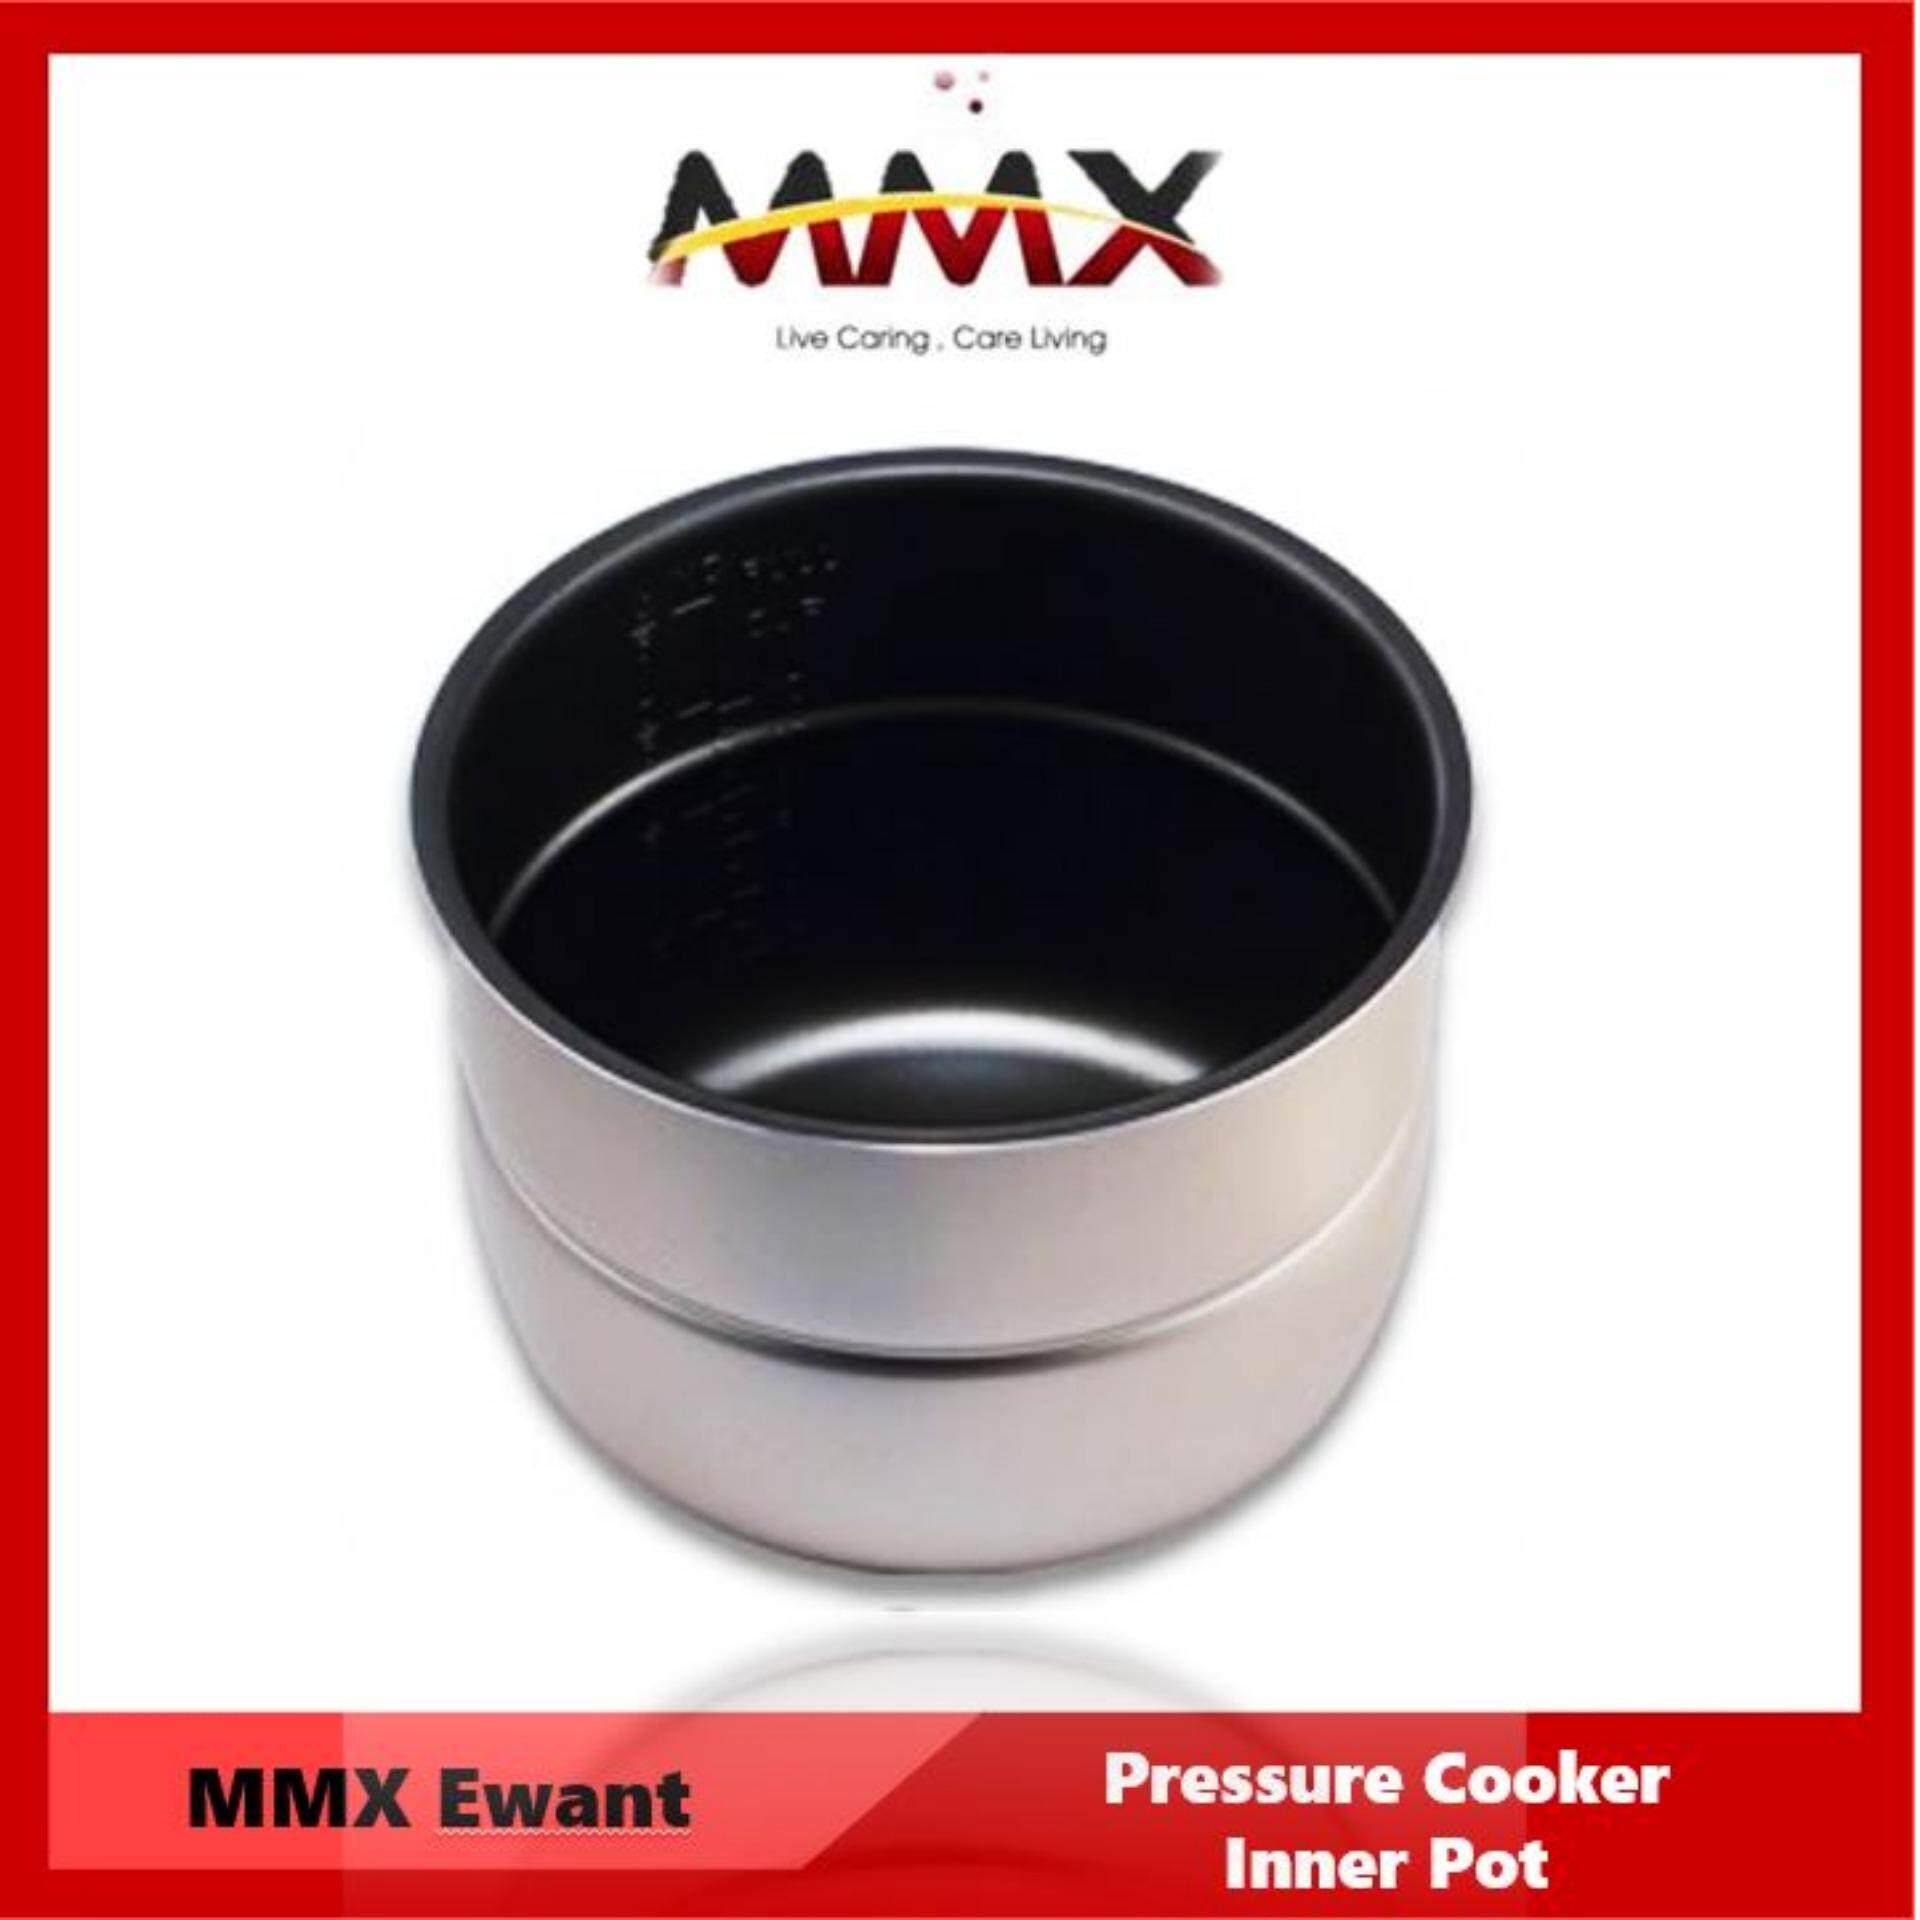 MMX - Ewant 6L pressure cooker Inner Pot - Non stick (Replacement)